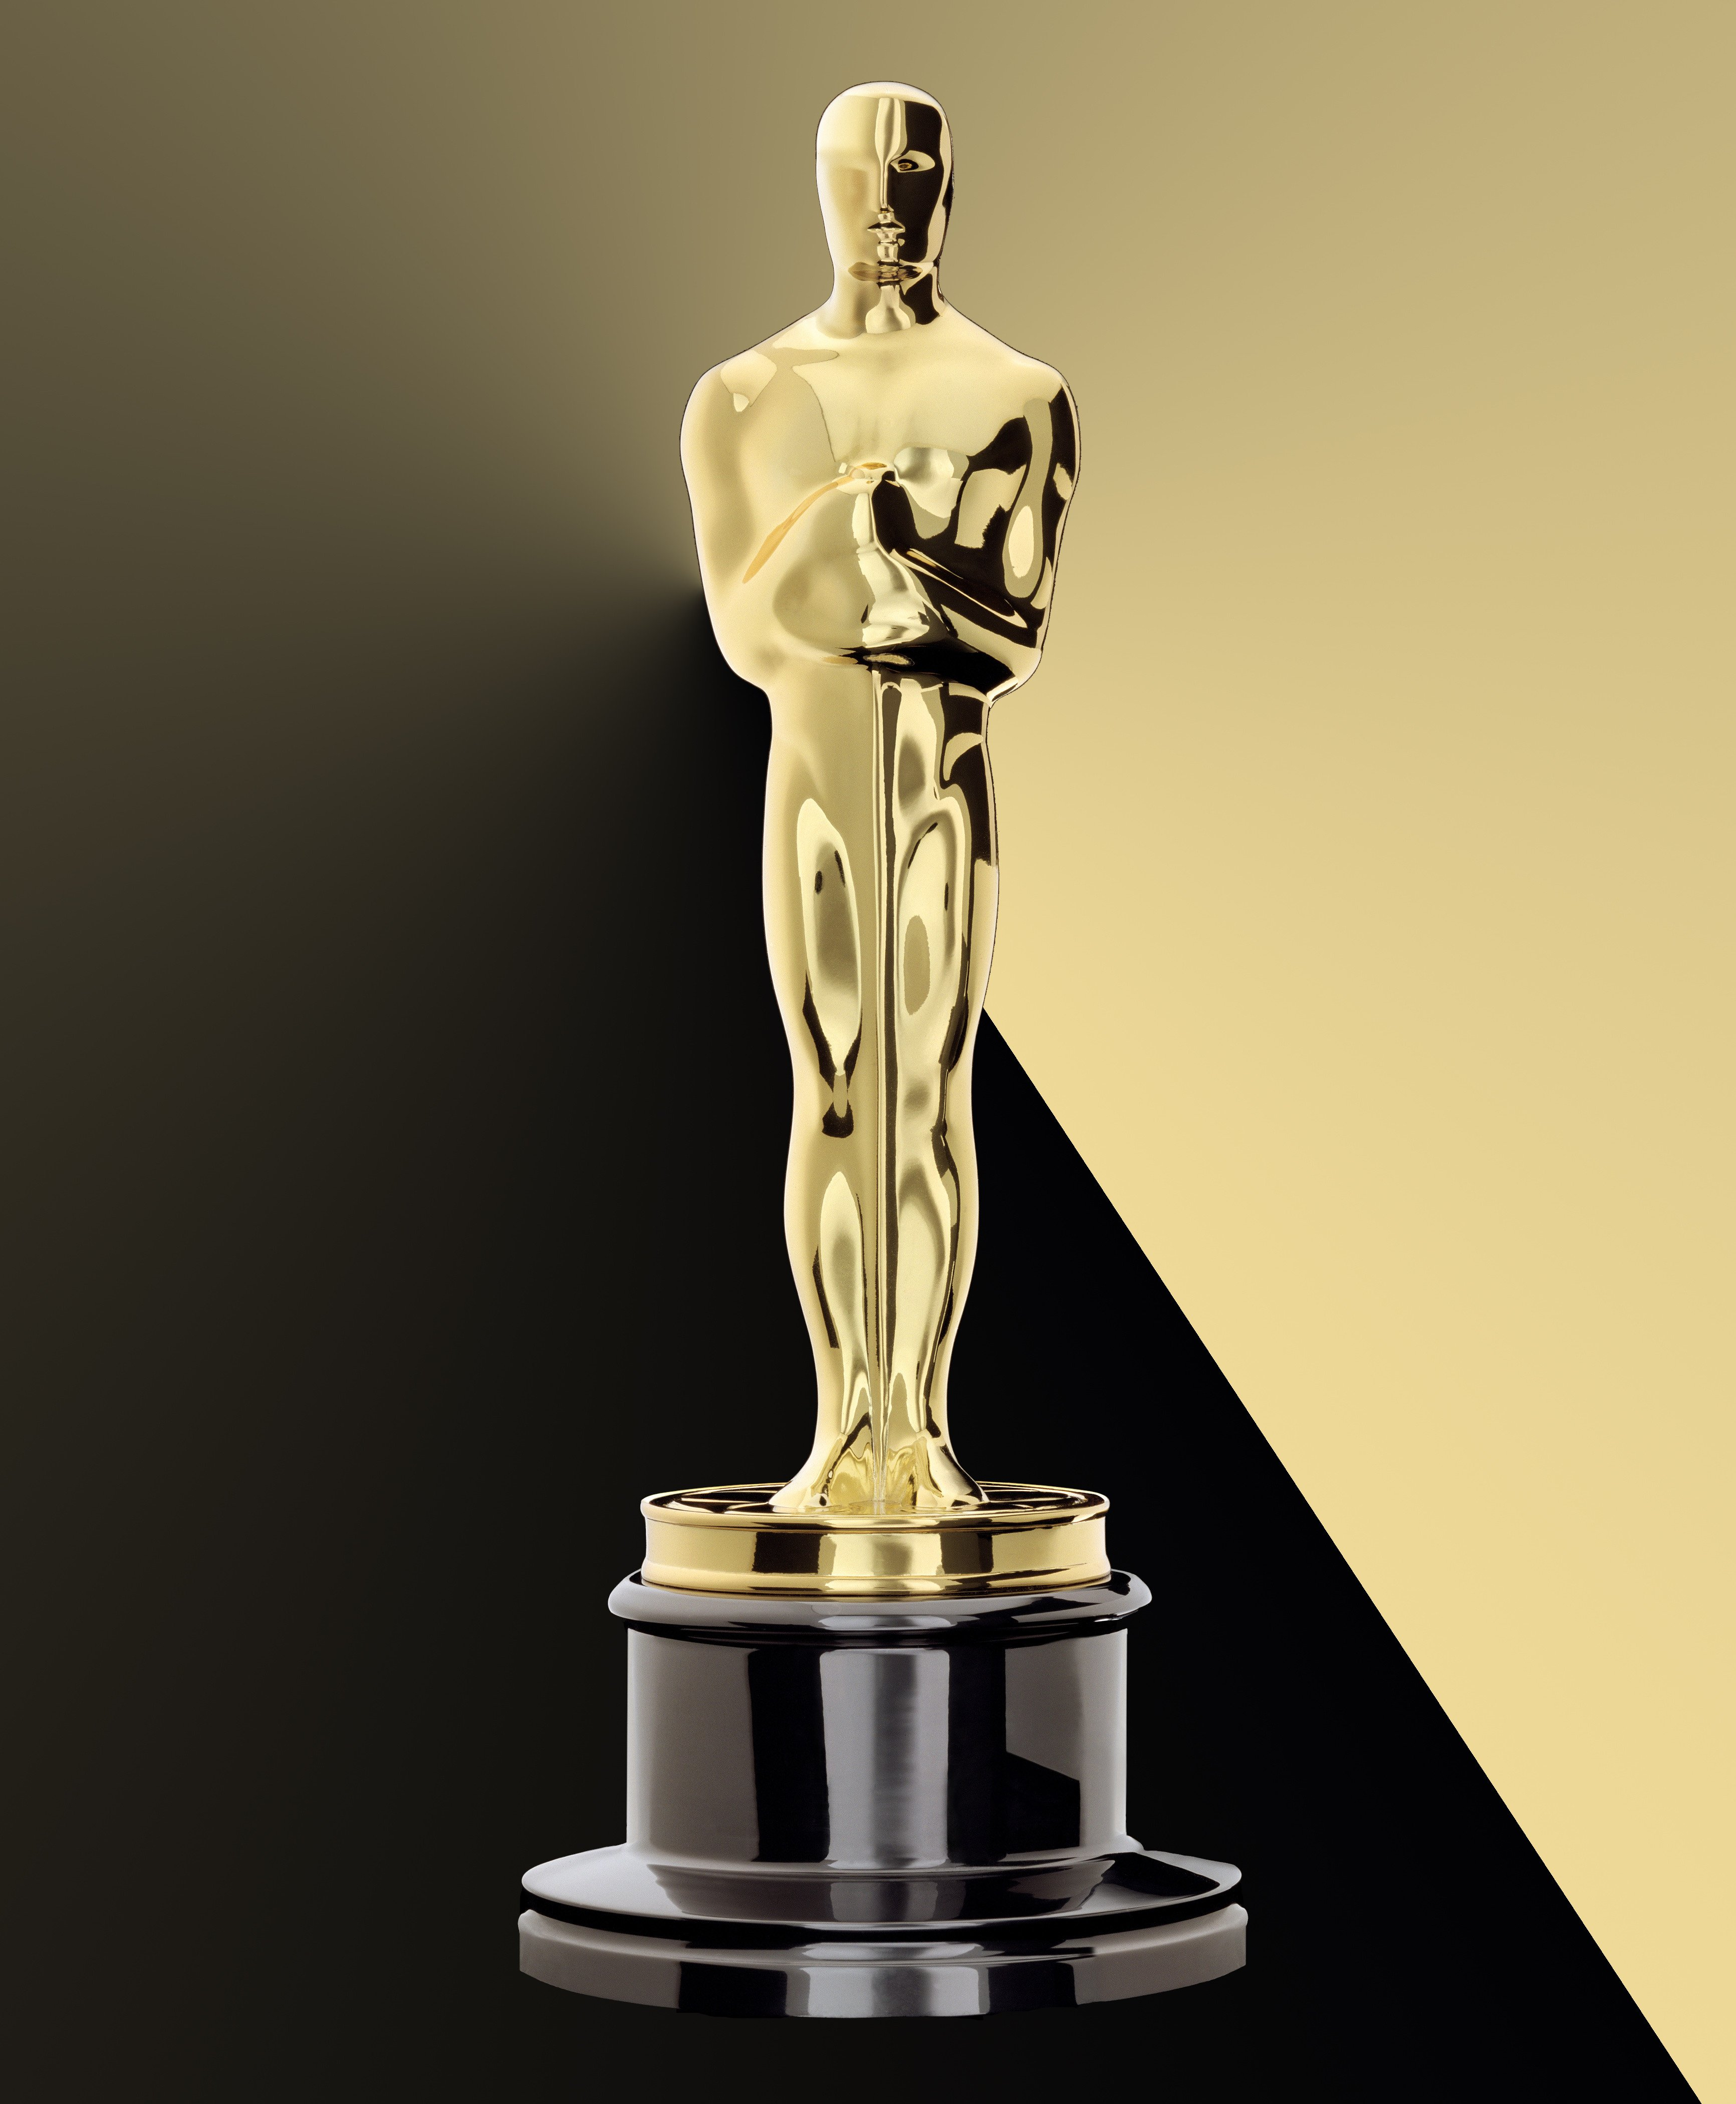 Oscar Statue Template 2015 Oscars A Look at the Best Documentary Feature Nominees